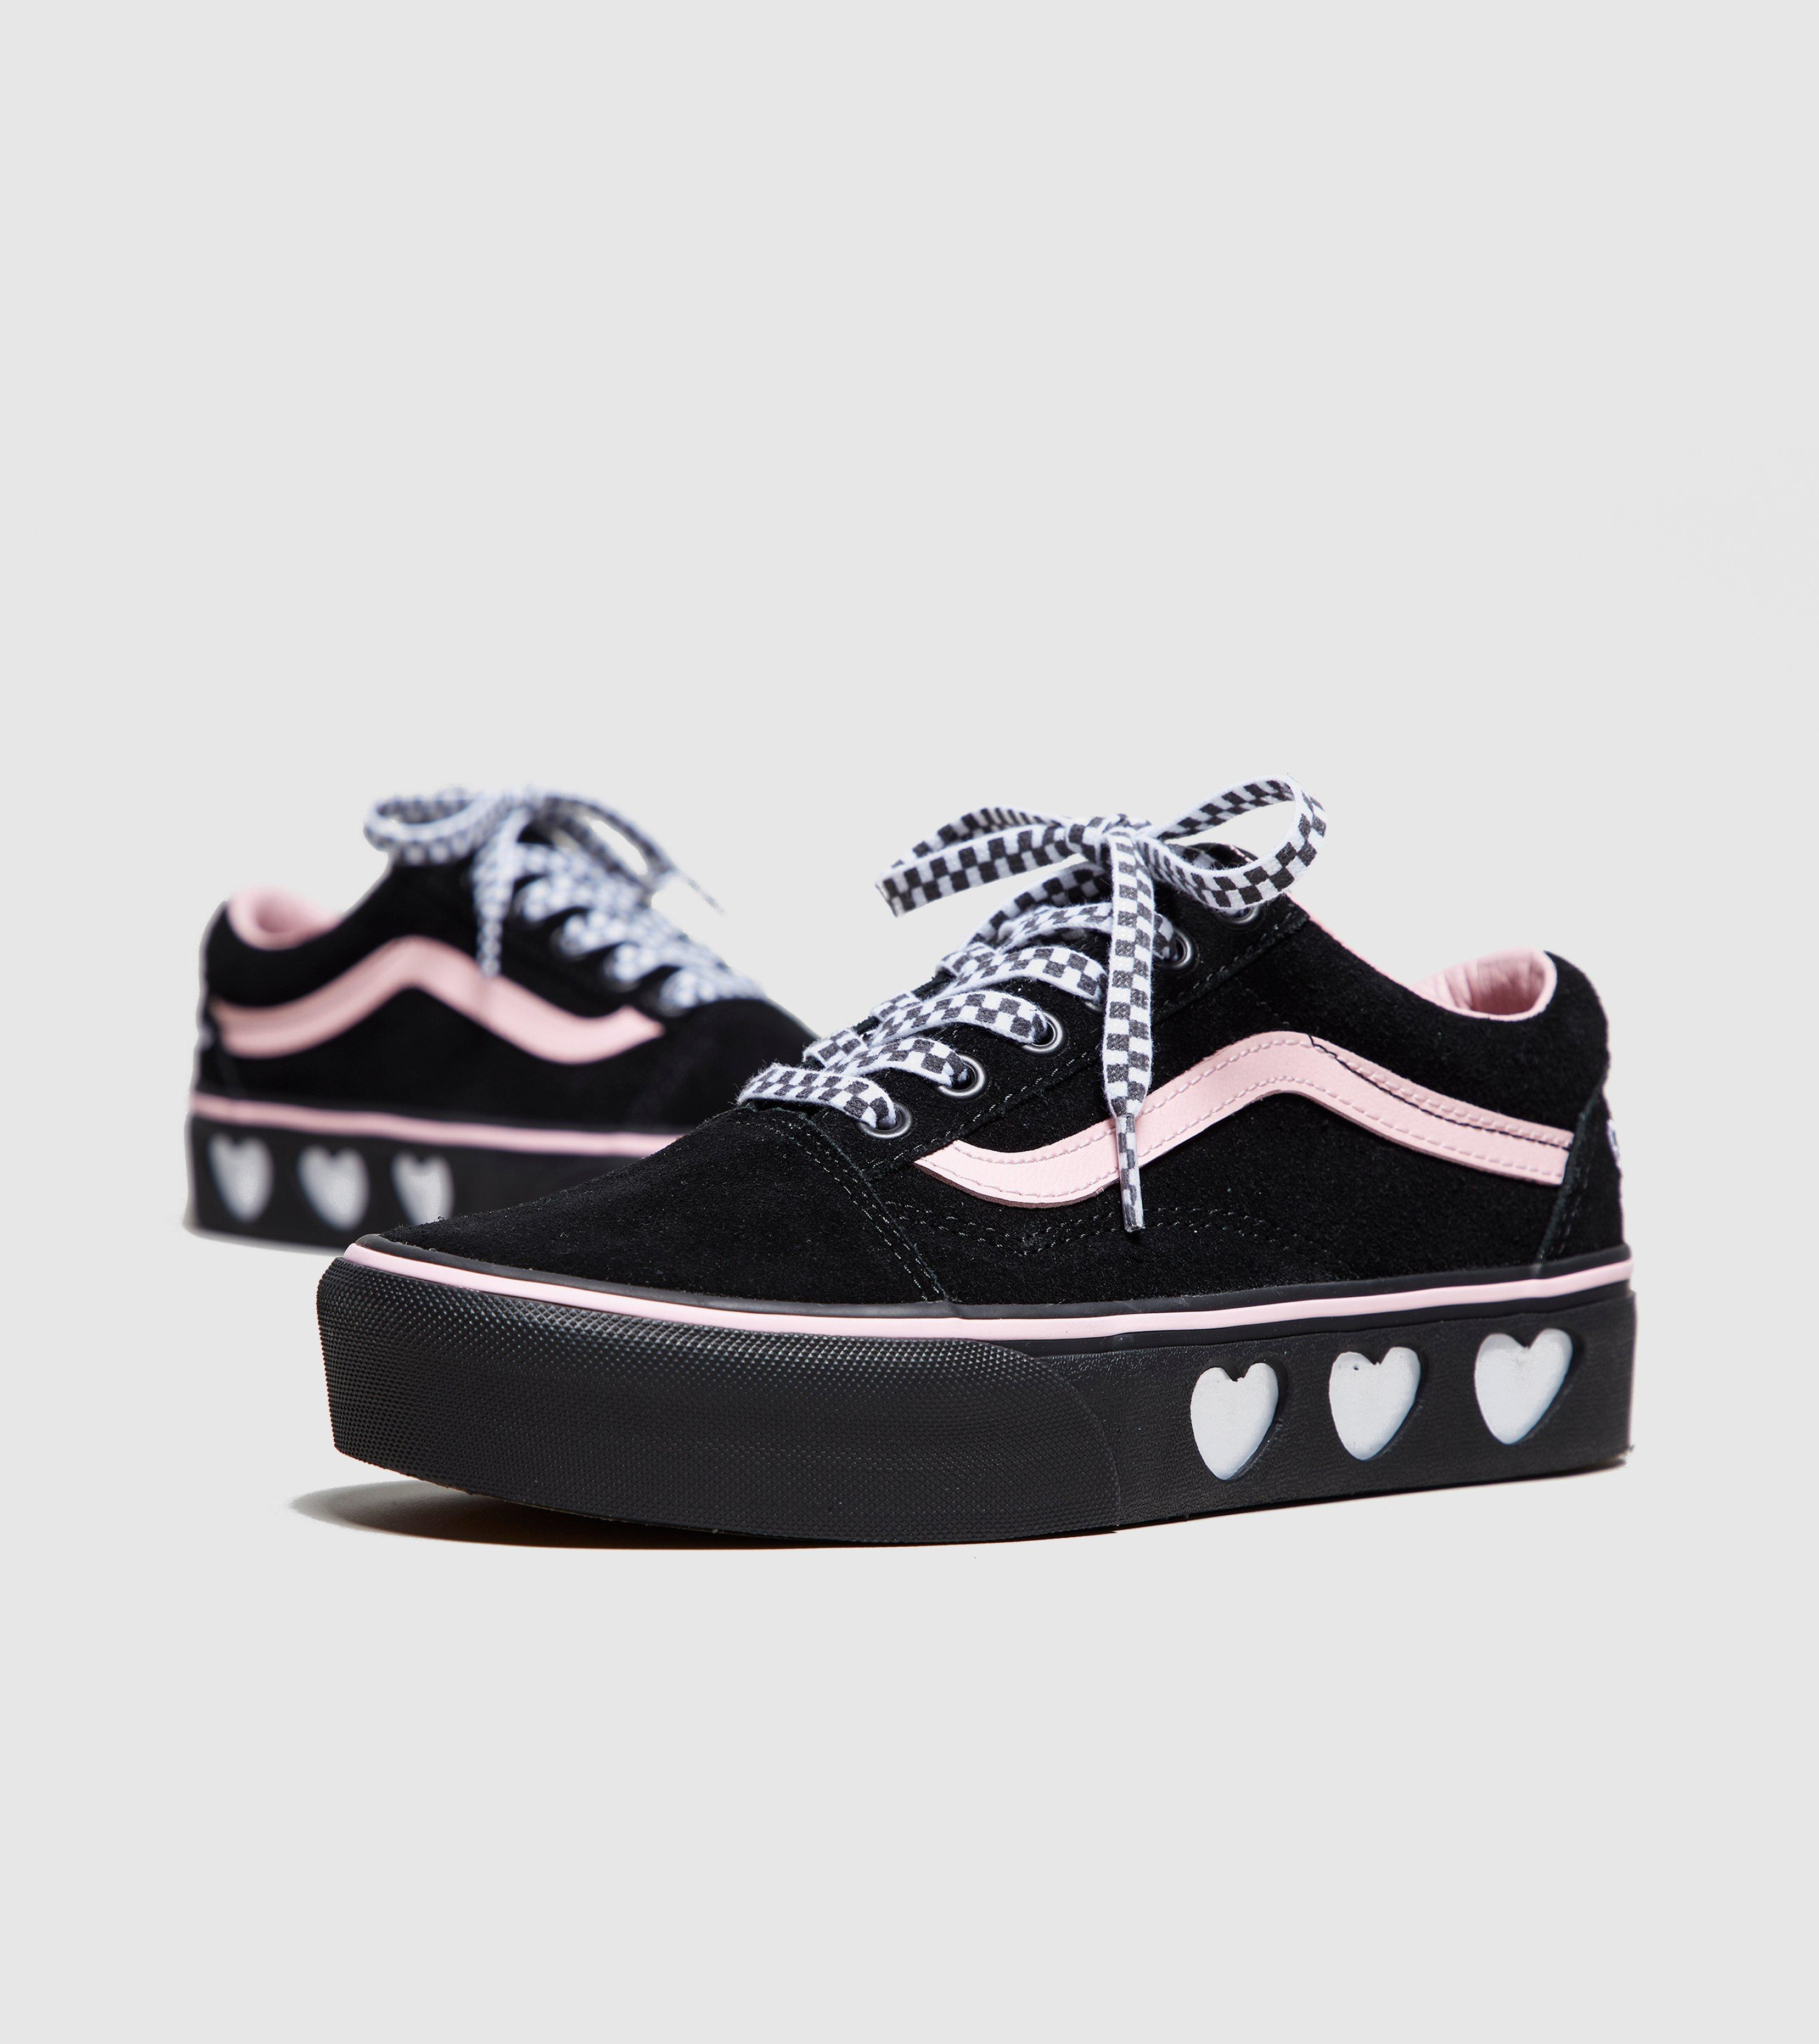 8036ac0d0b6d Lyst - Vans X Lazy Oaf Old Skool Platform in Black